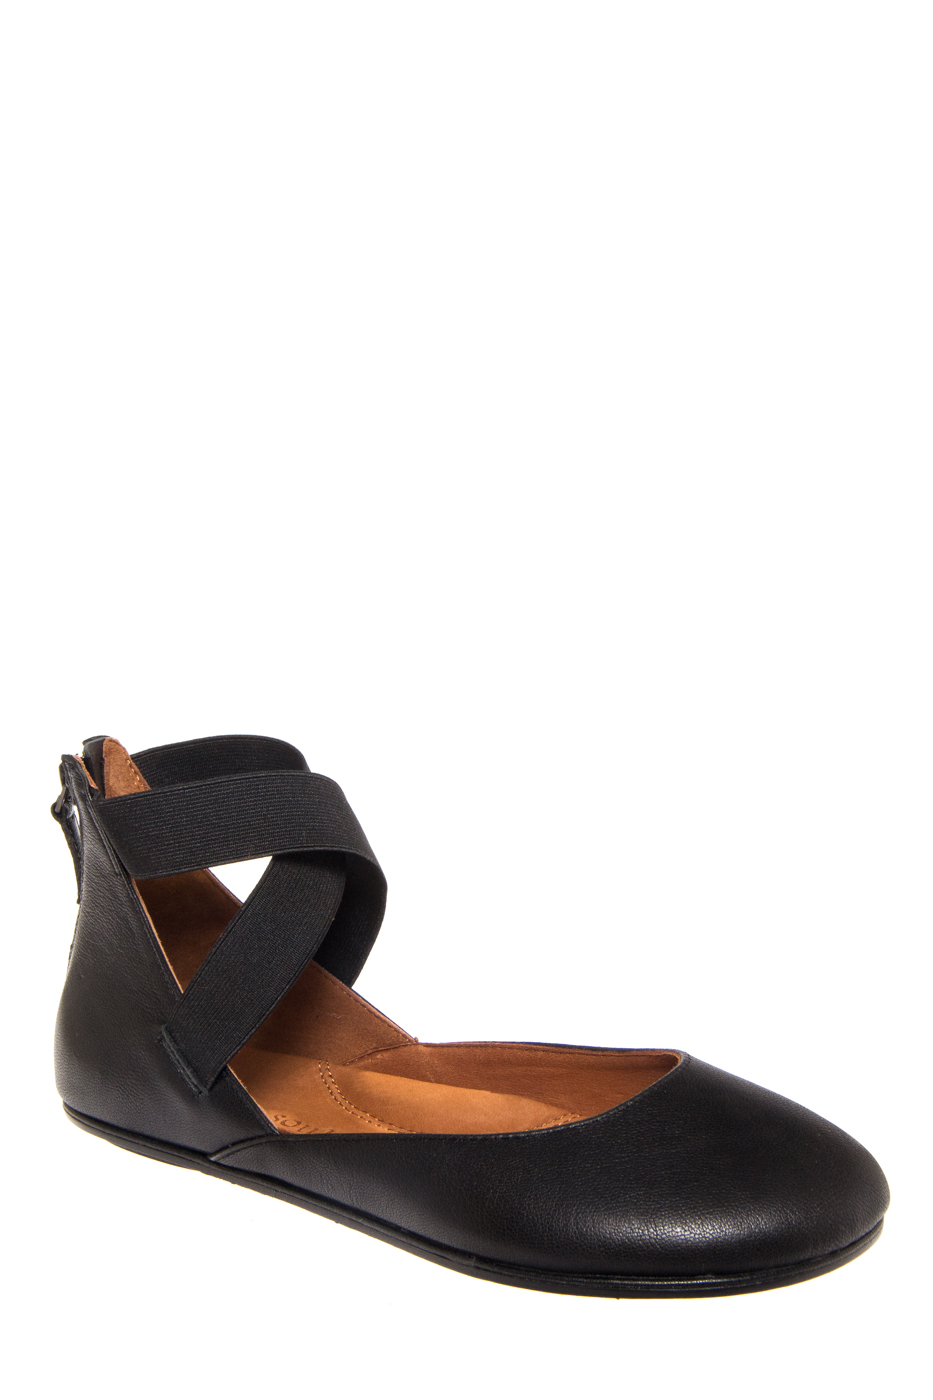 Gentle Souls Bay Unique Flats Shoes - Black Leather